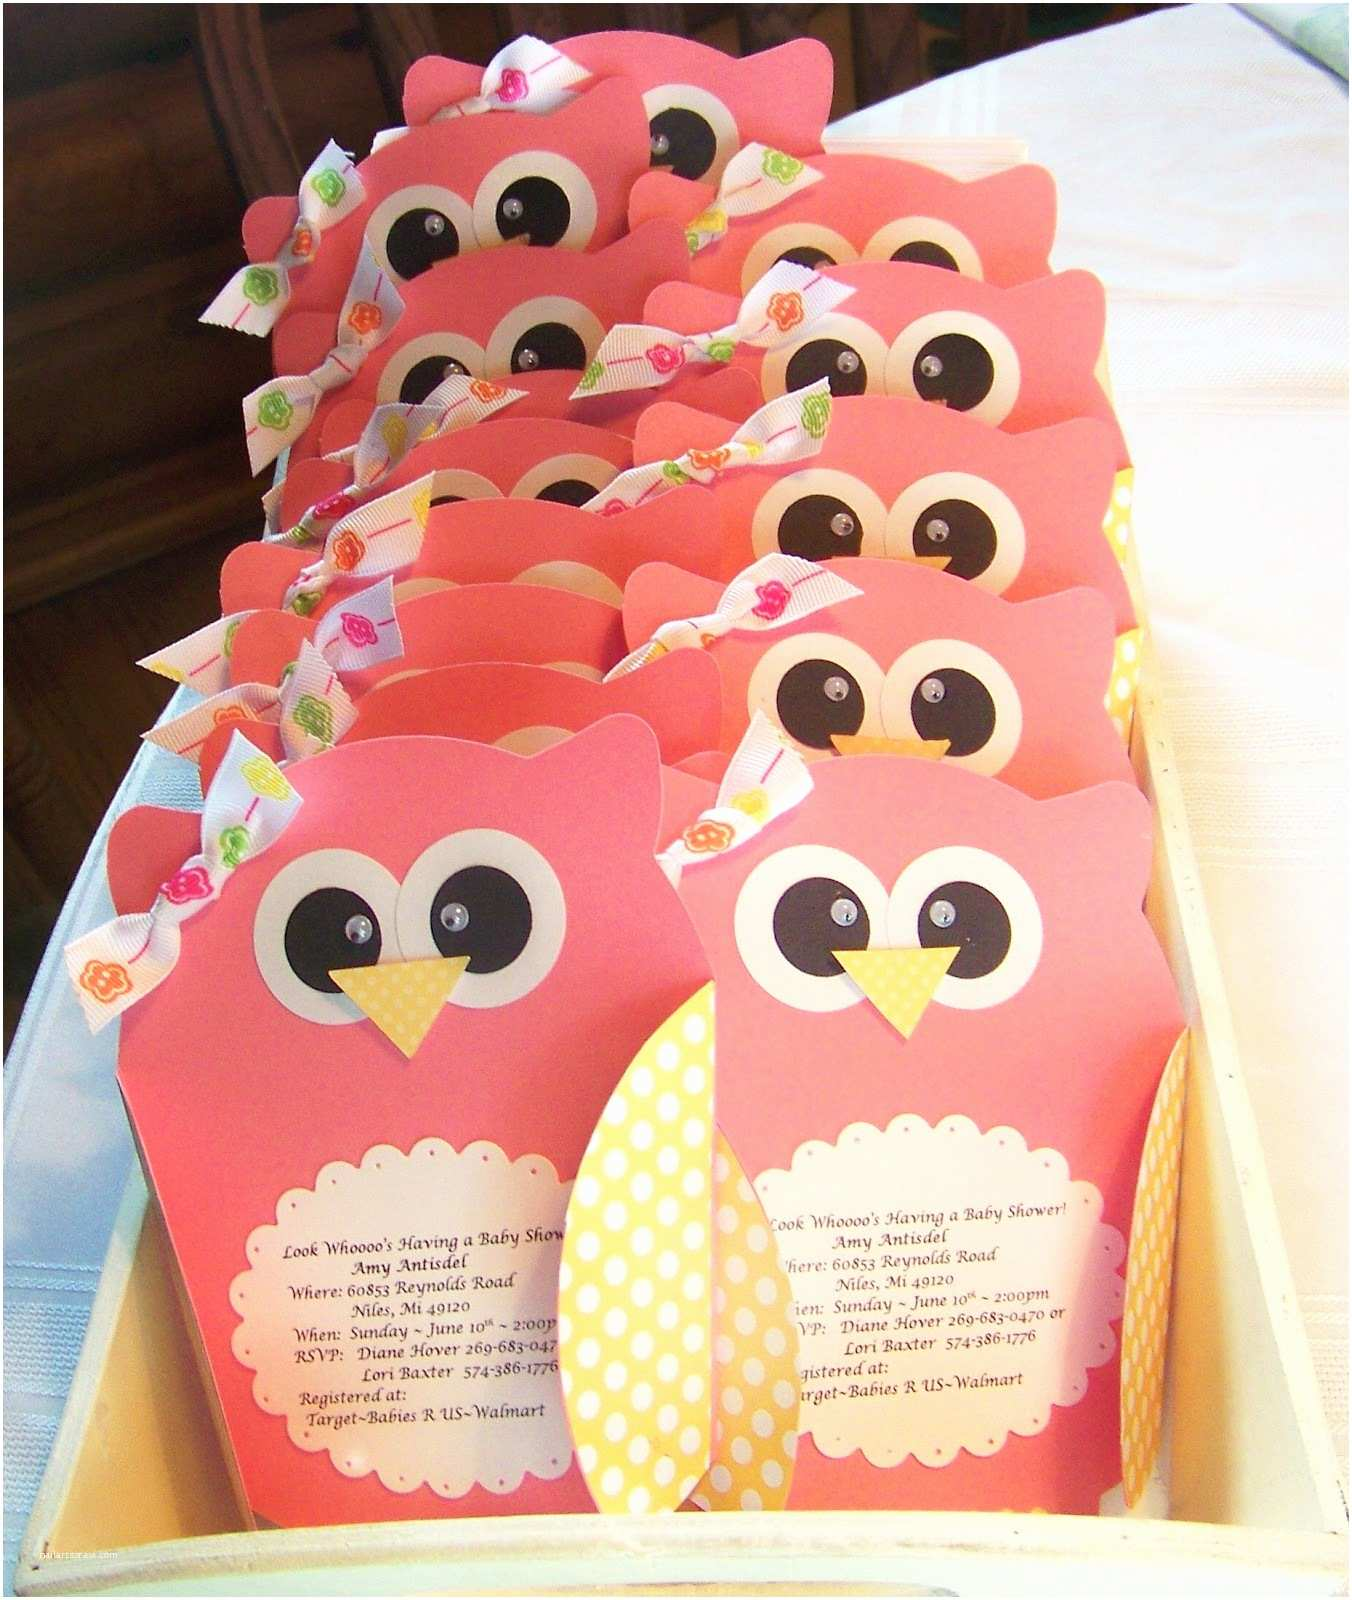 Owl Invitations for Baby Shower Owl Baby Shower Invitations Baby Shower Decoration Ideas